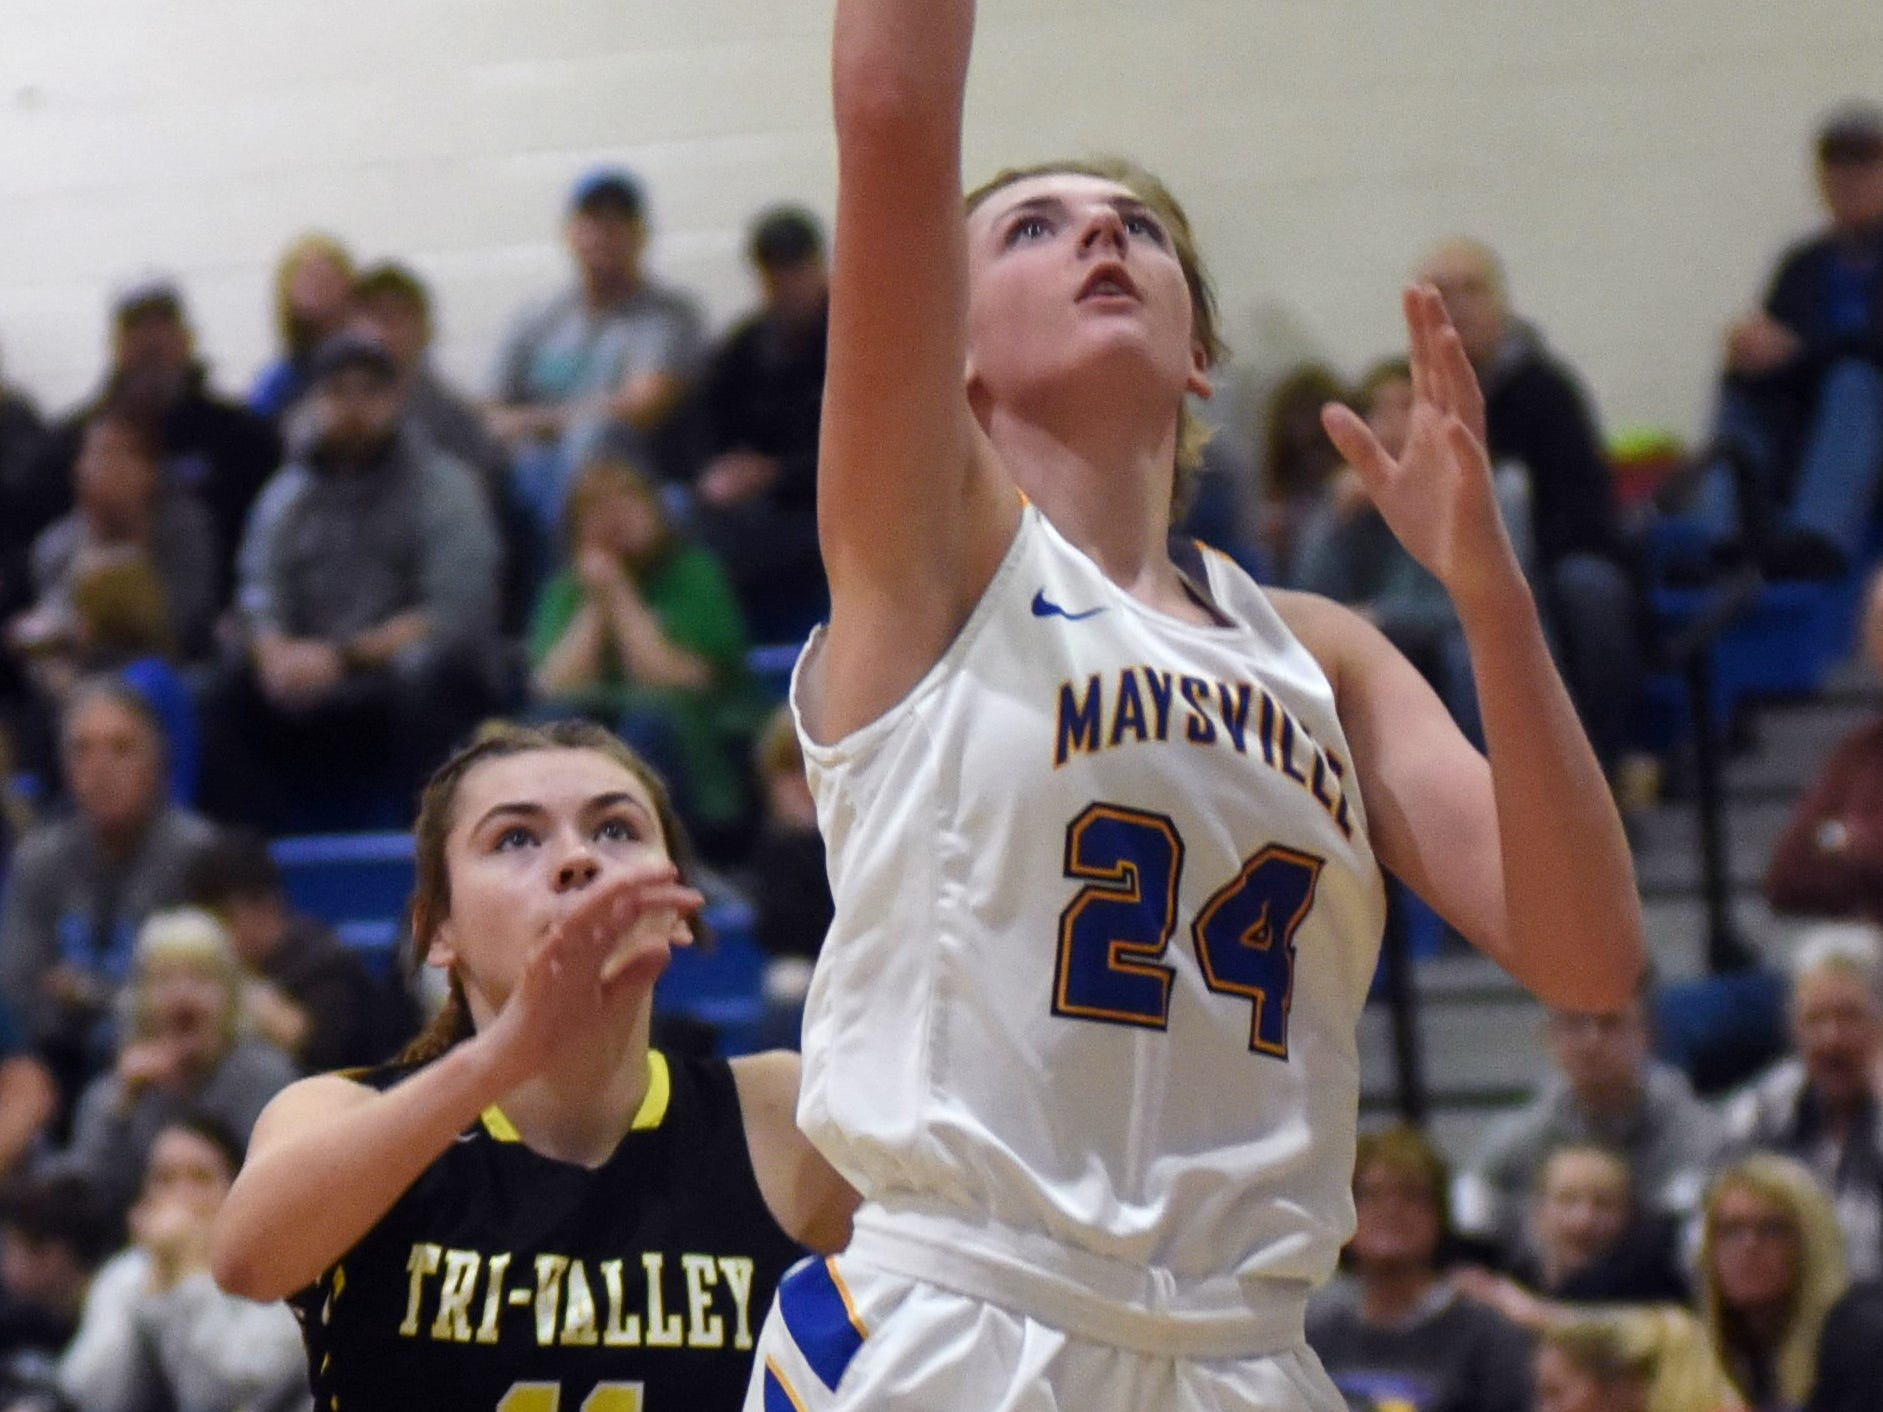 Maysville's Alexis Samson shoots in the line against Tri-Valley.